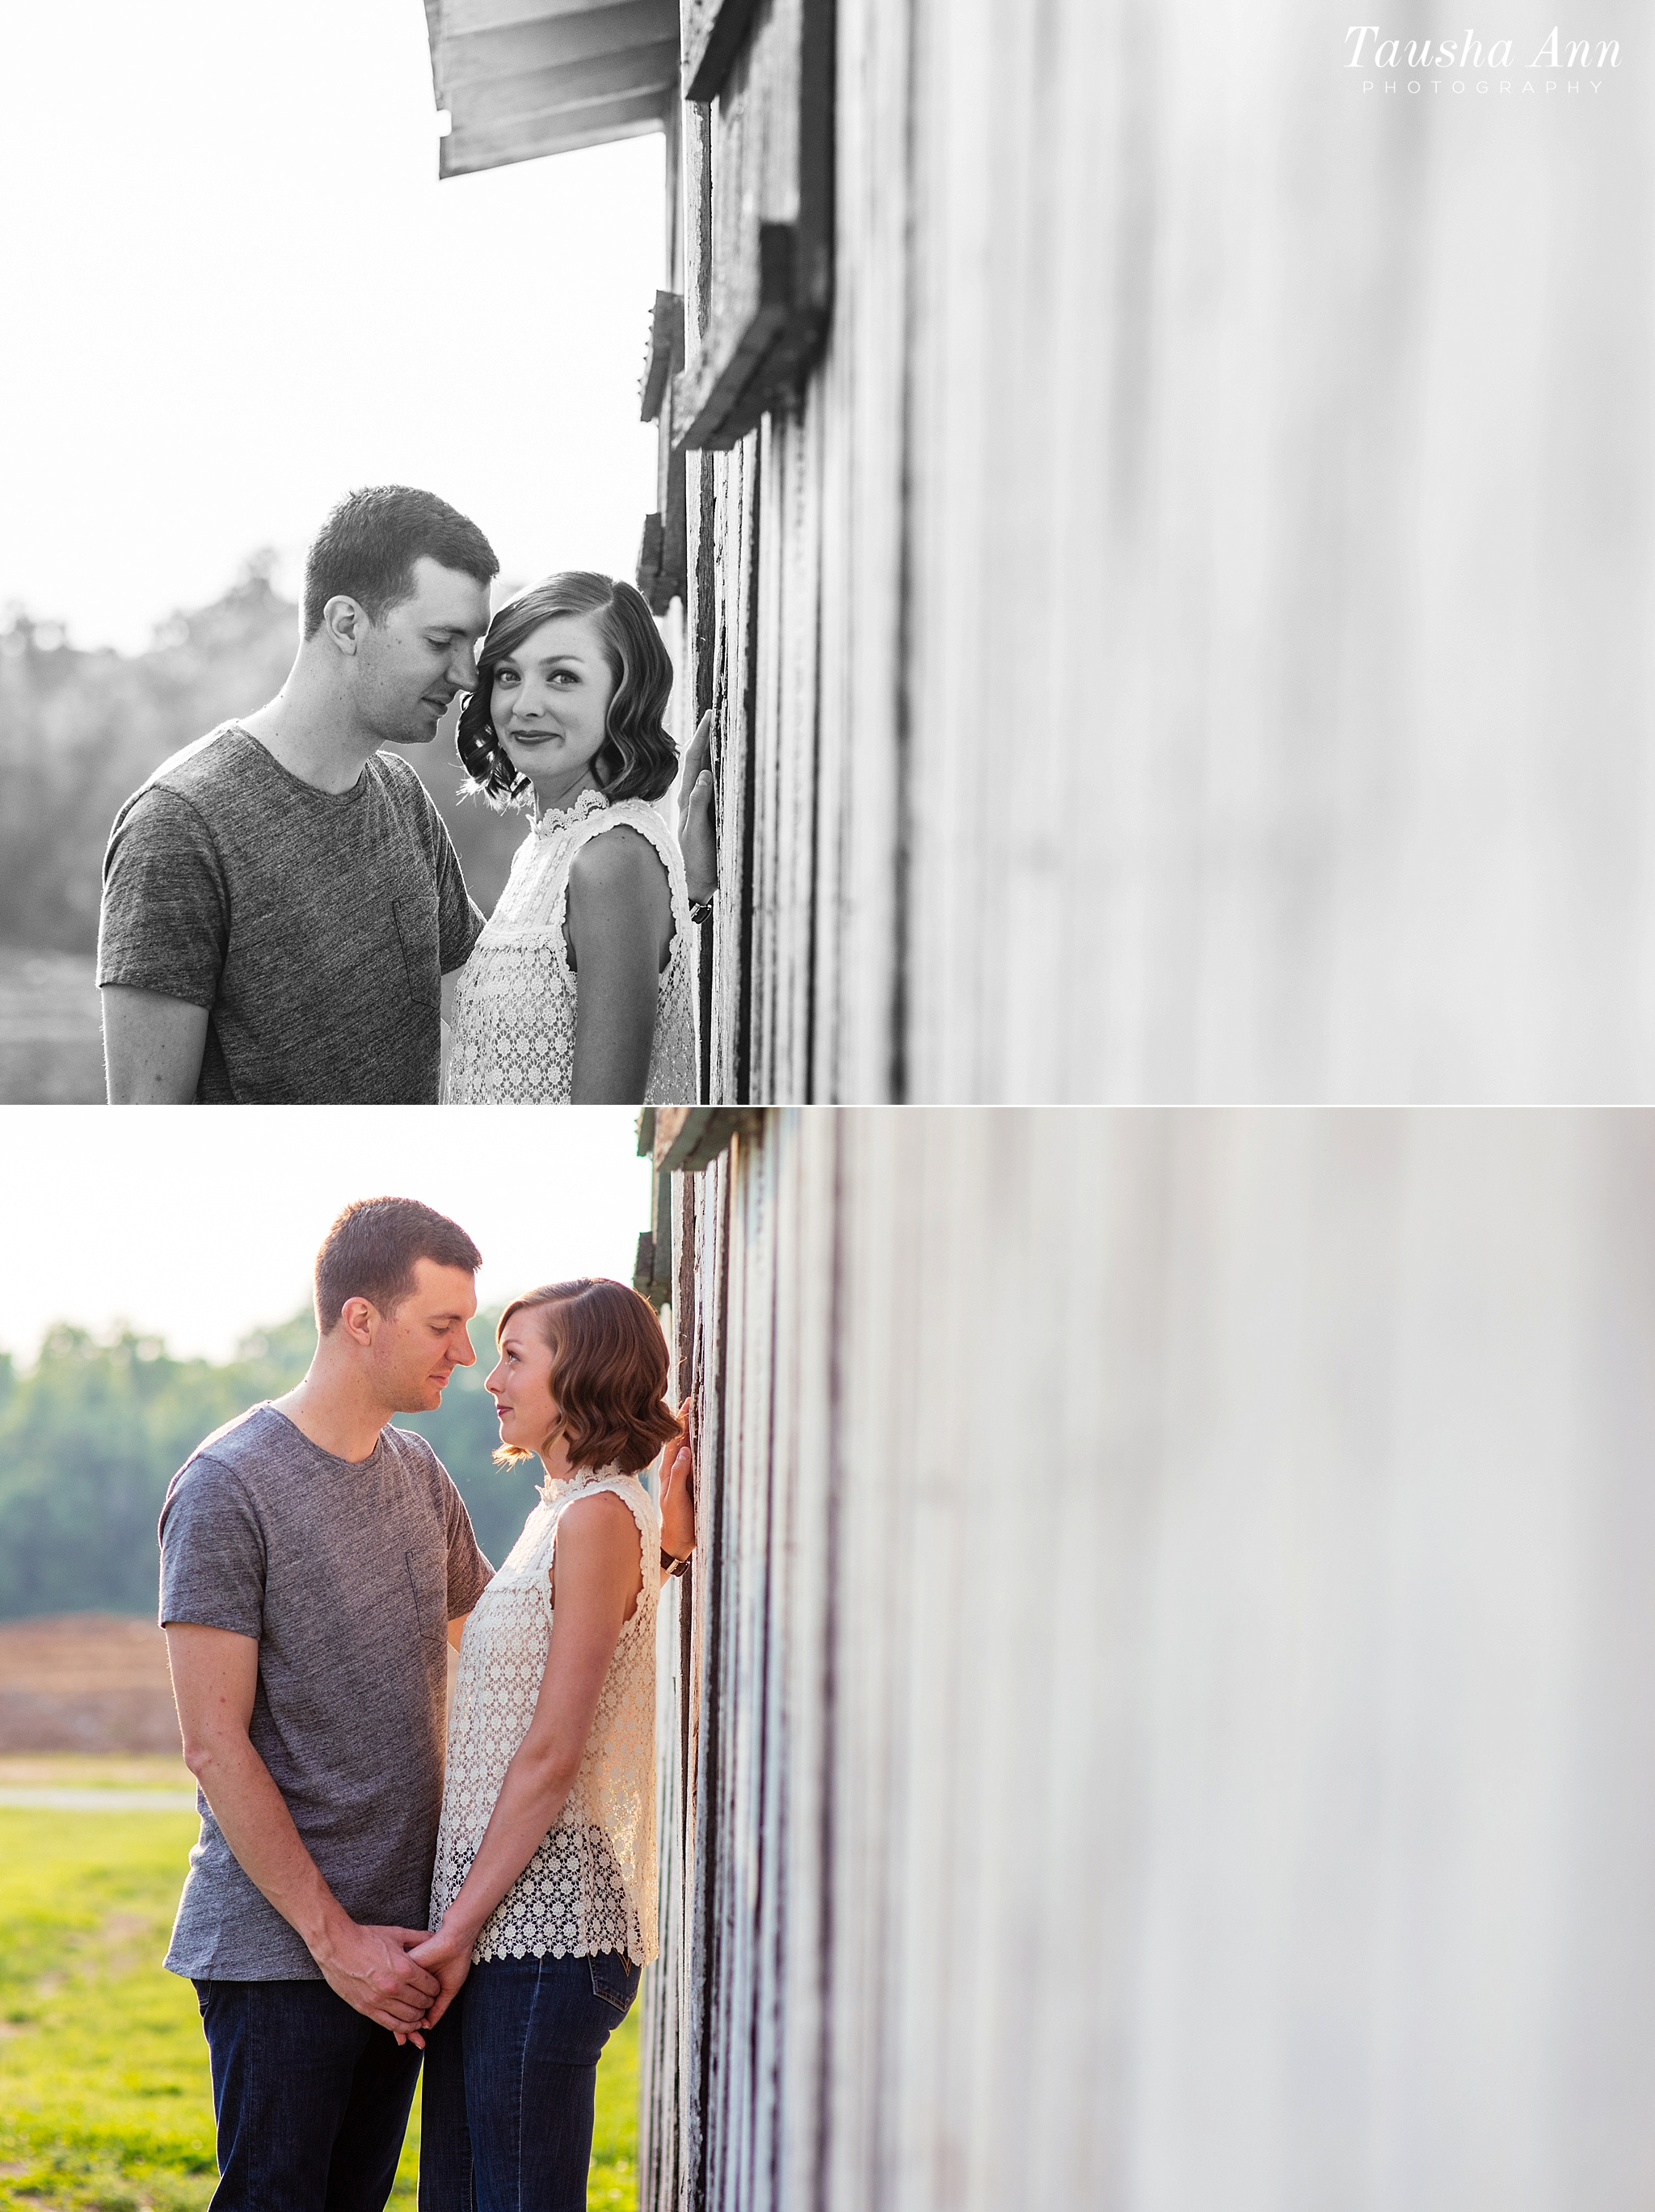 Nashville_engagement_Wedding_Tausha_Ann_Photography_Franklin_TN_Harlinsdale_Farm_Agricultural_Center_Nashville_0106